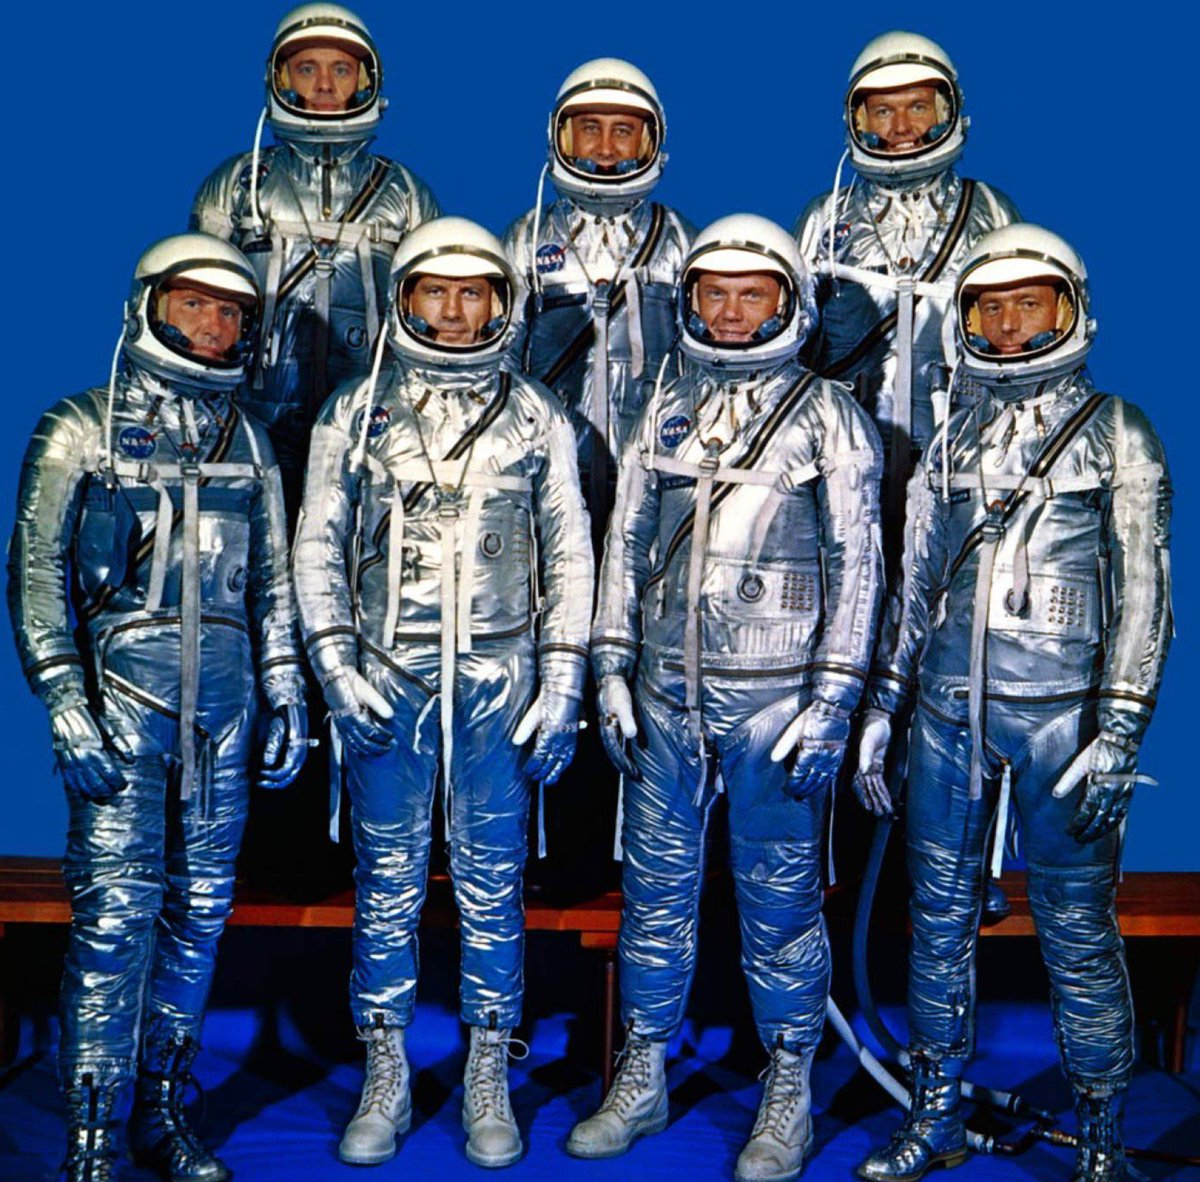 NASA was created today 1958, leading to selection of seven Mercury astronauts: